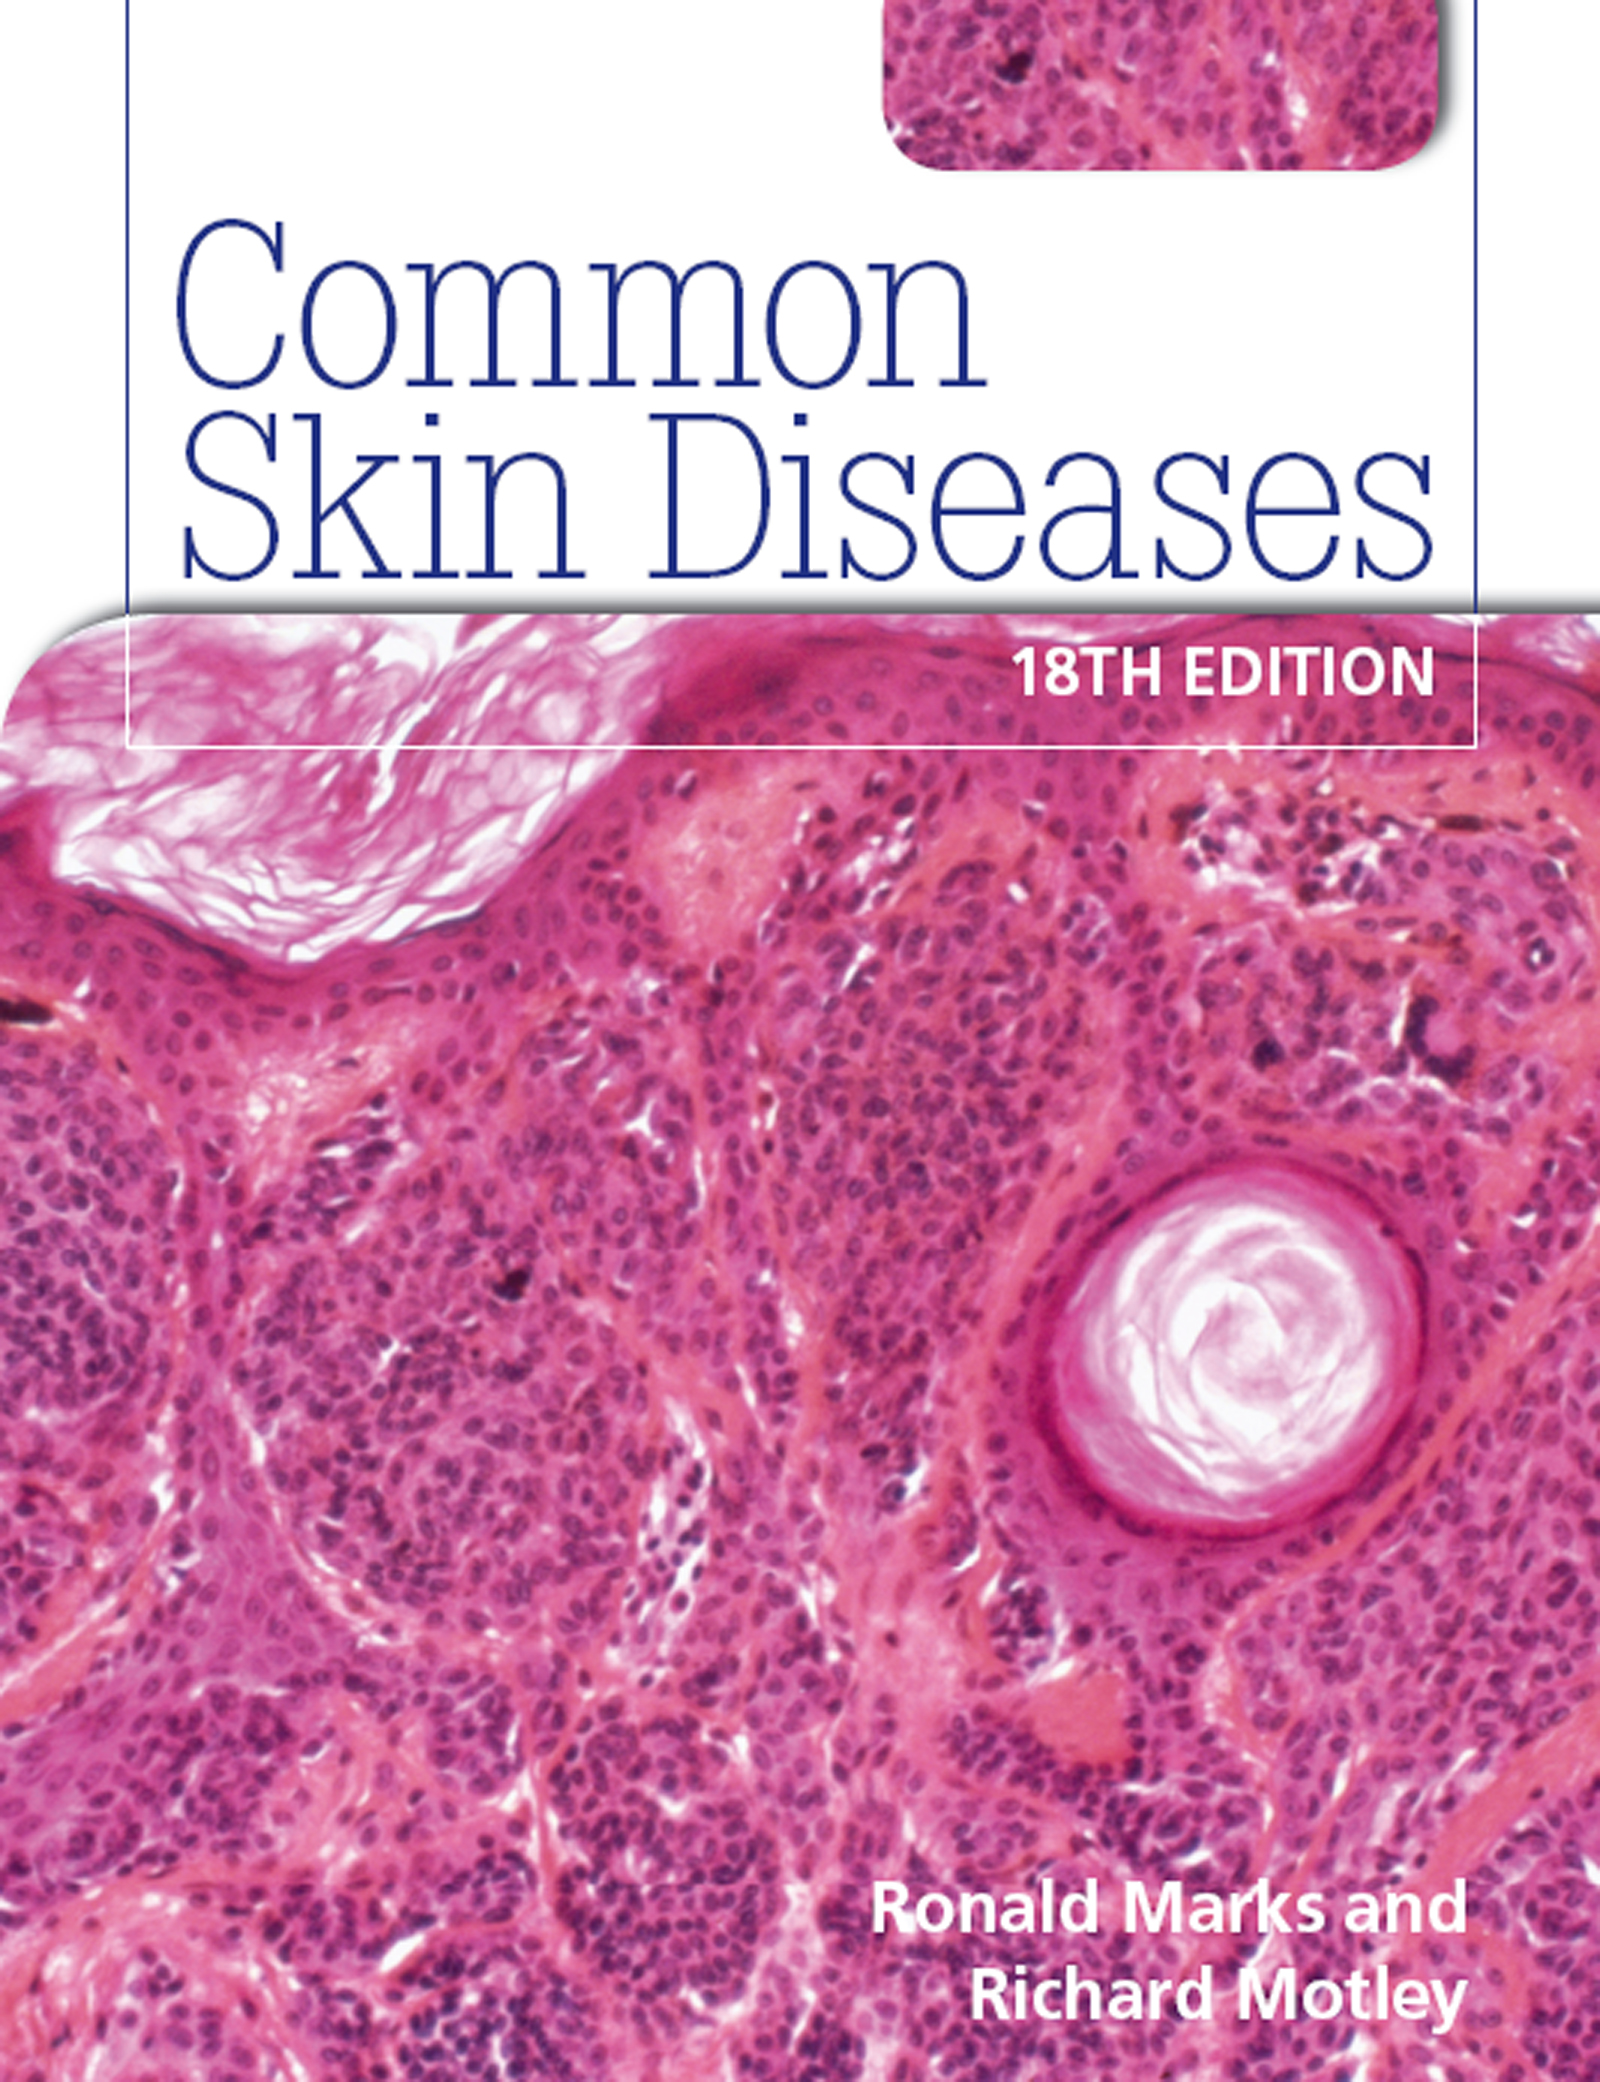 Common Skin Diseases 18th edition book cover